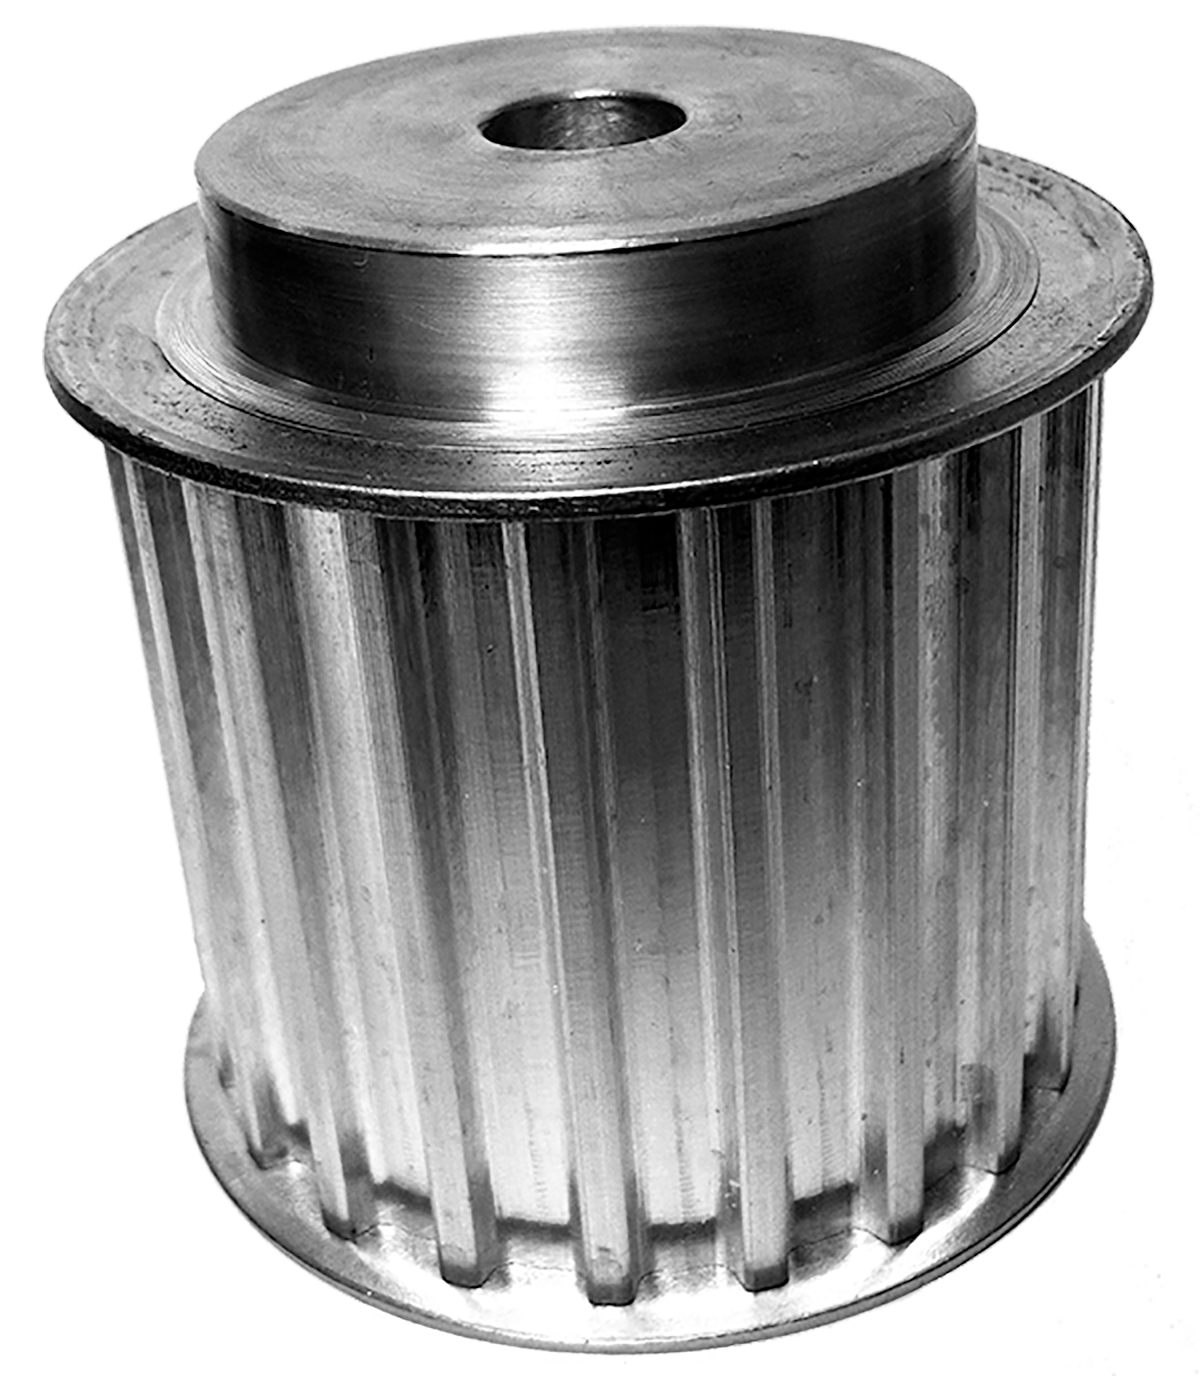 66AT10/24-2 - Aluminum Metric Pulleys